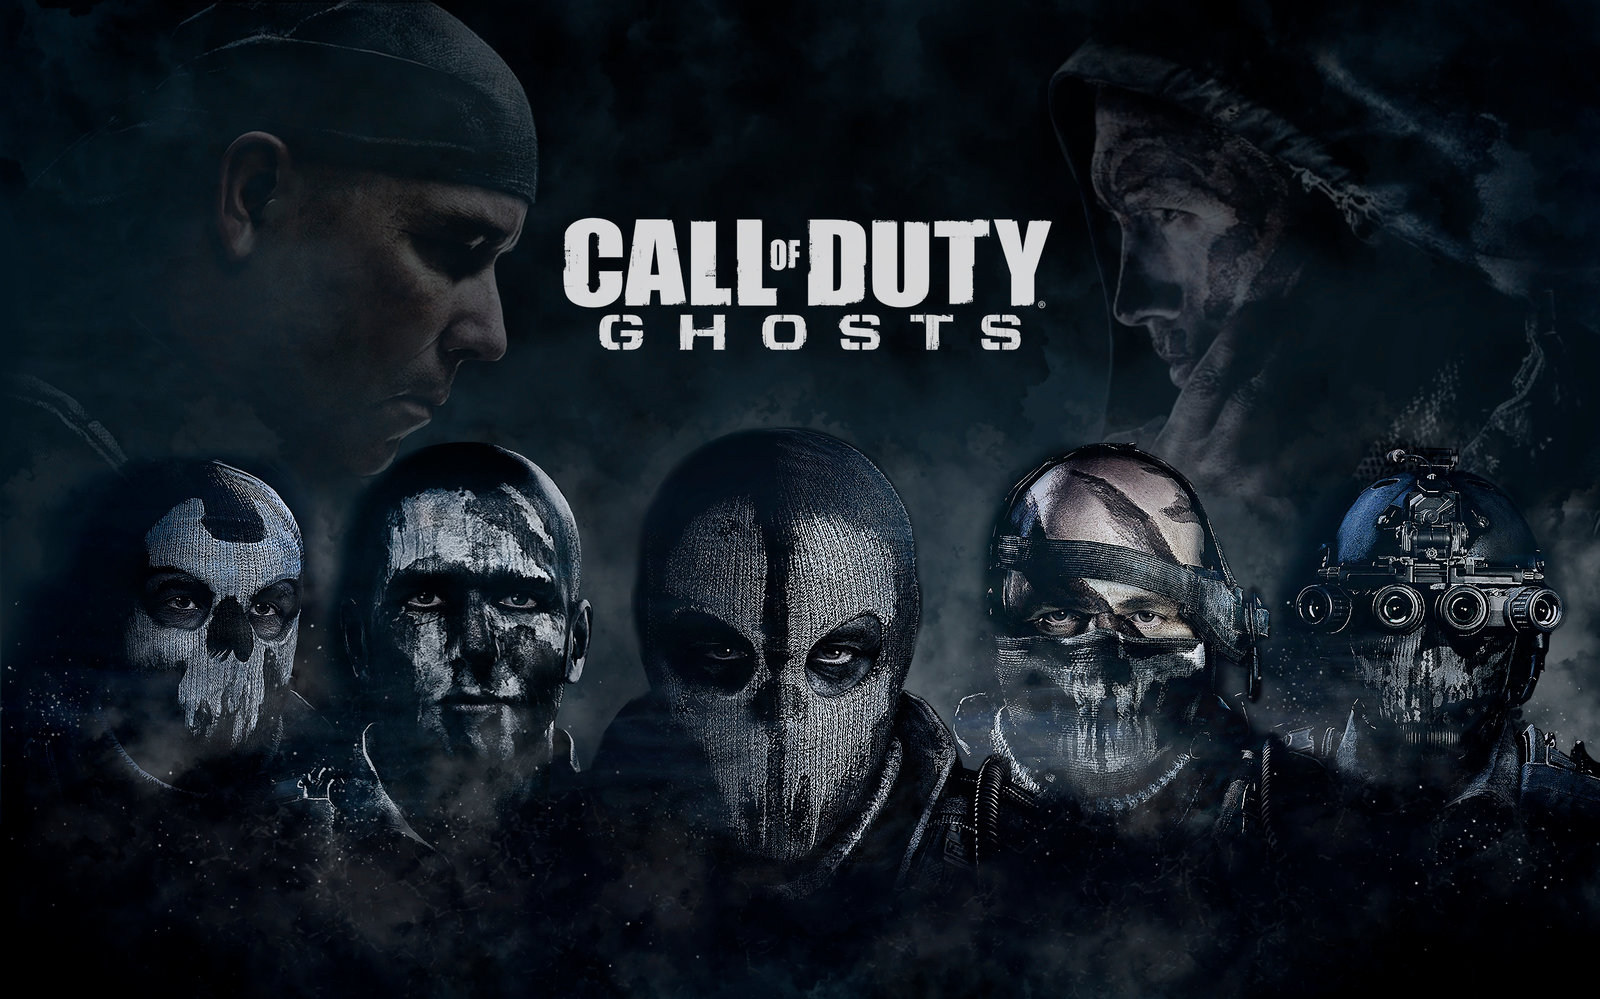 Call Of Duty Ghost Wallpaper 1600x999